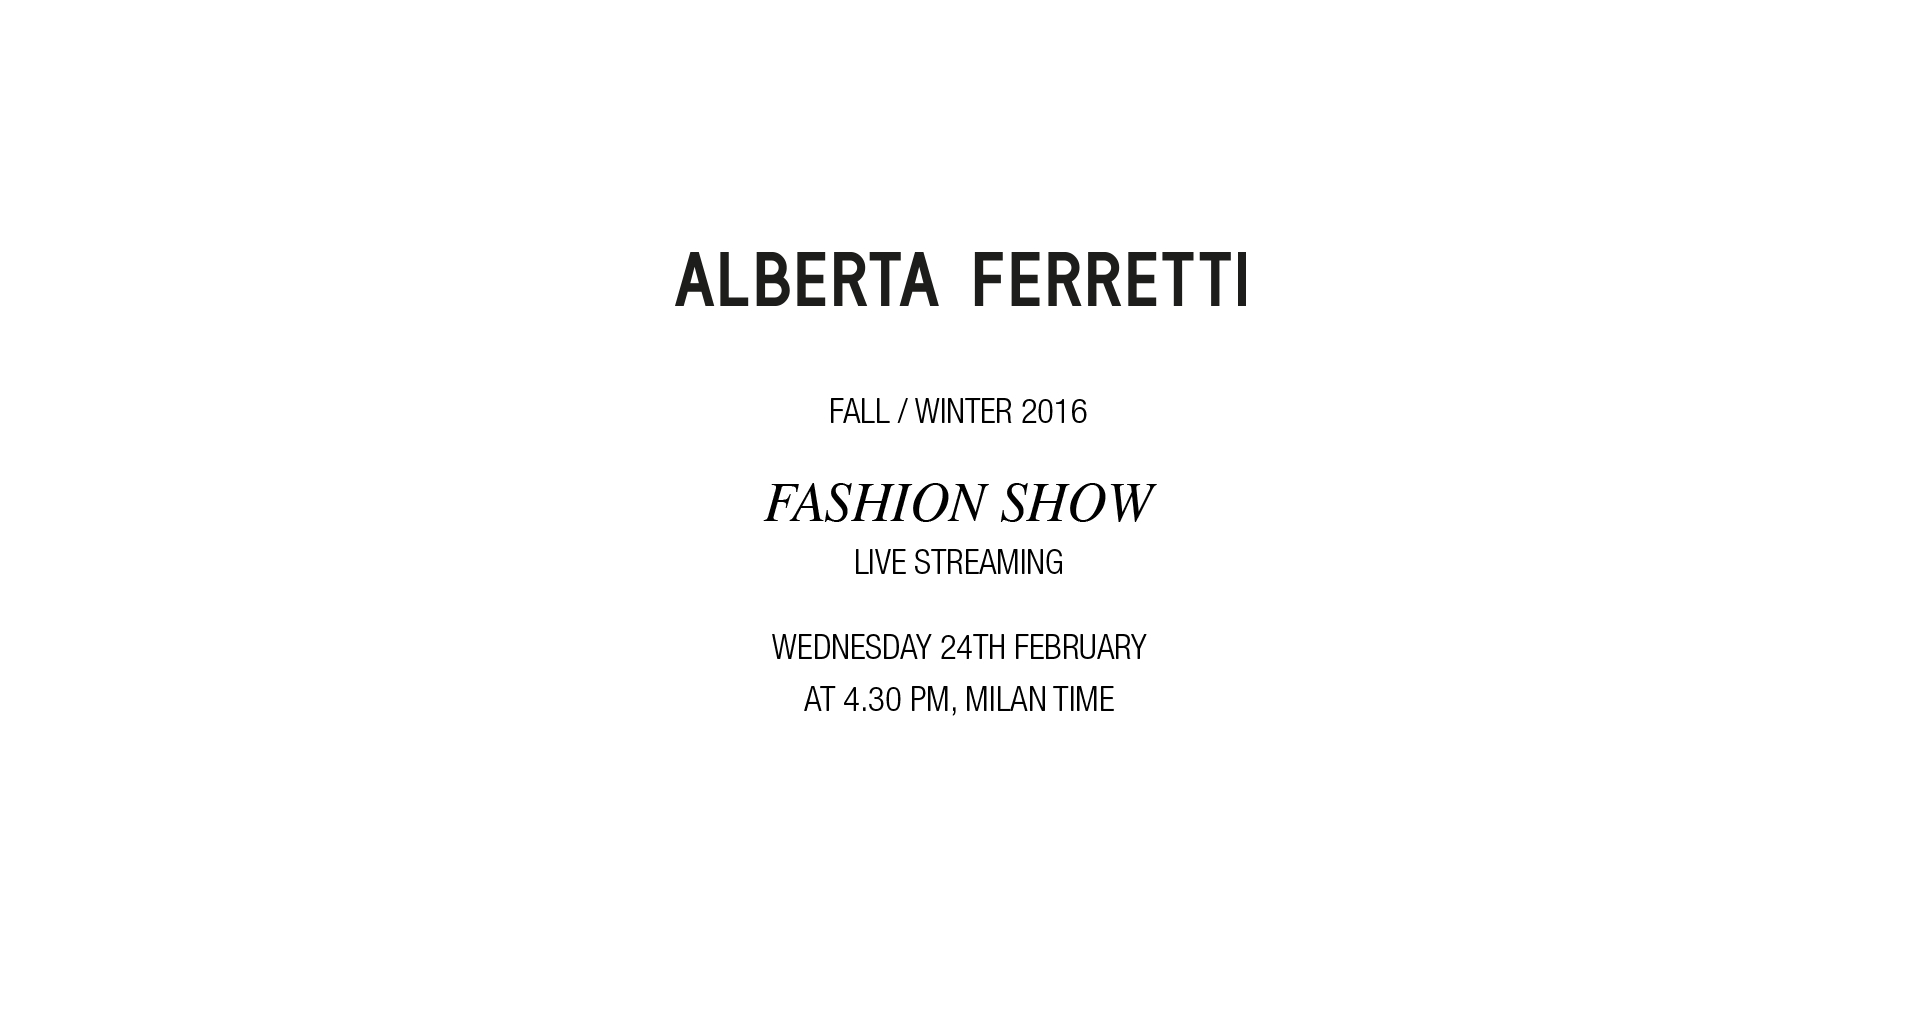 Alberta Ferretti Fall Winter 2016 Women's Fashion Show Live Streaming